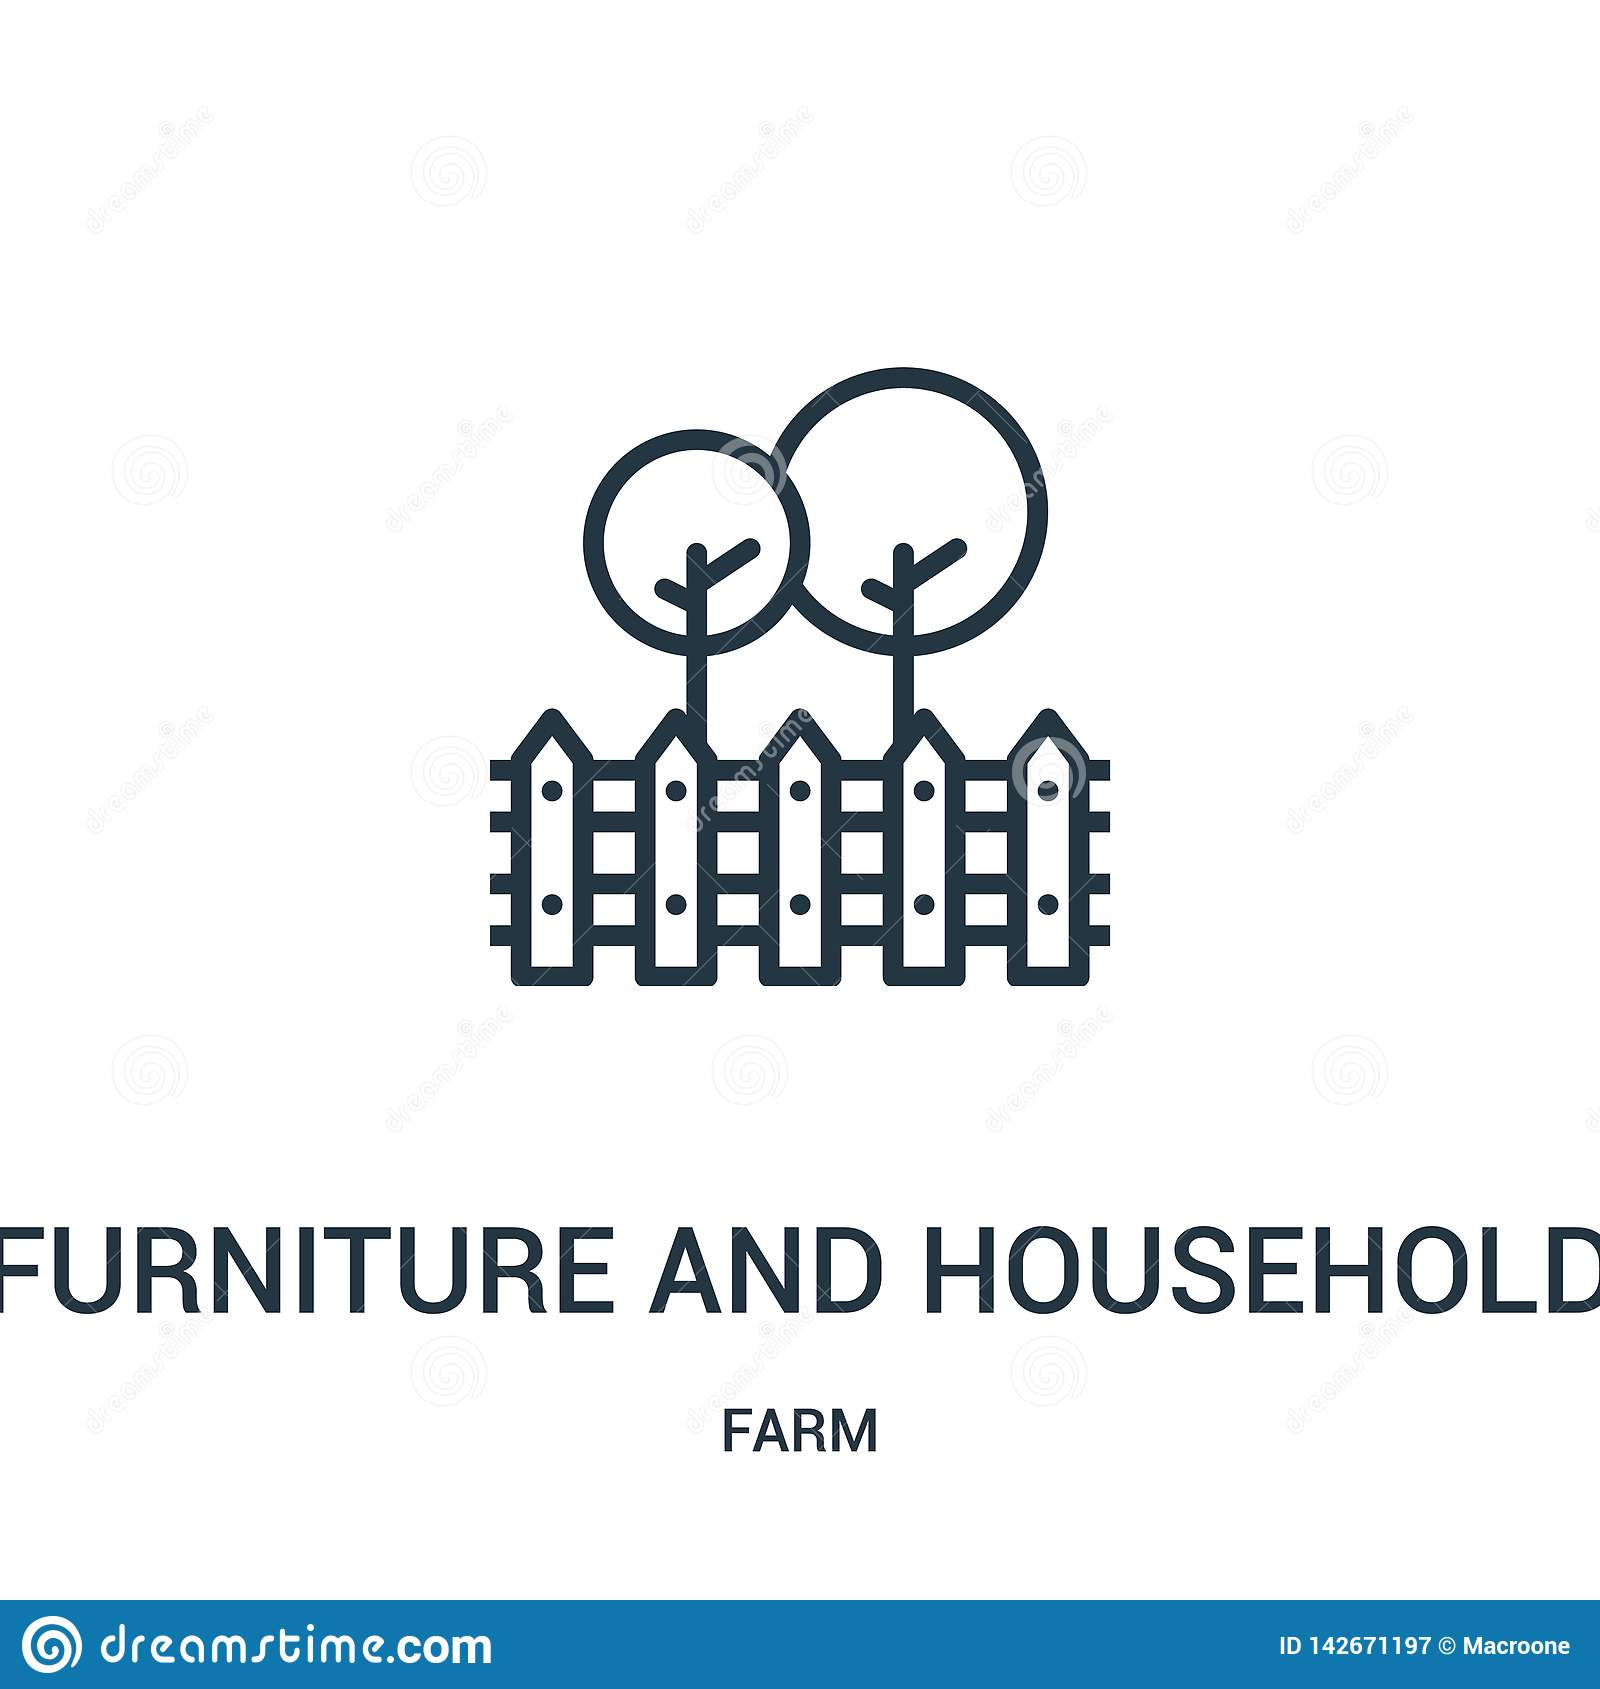 furniture and household icon vector from farm collection. Thin line furniture and household outline icon vector illustration.